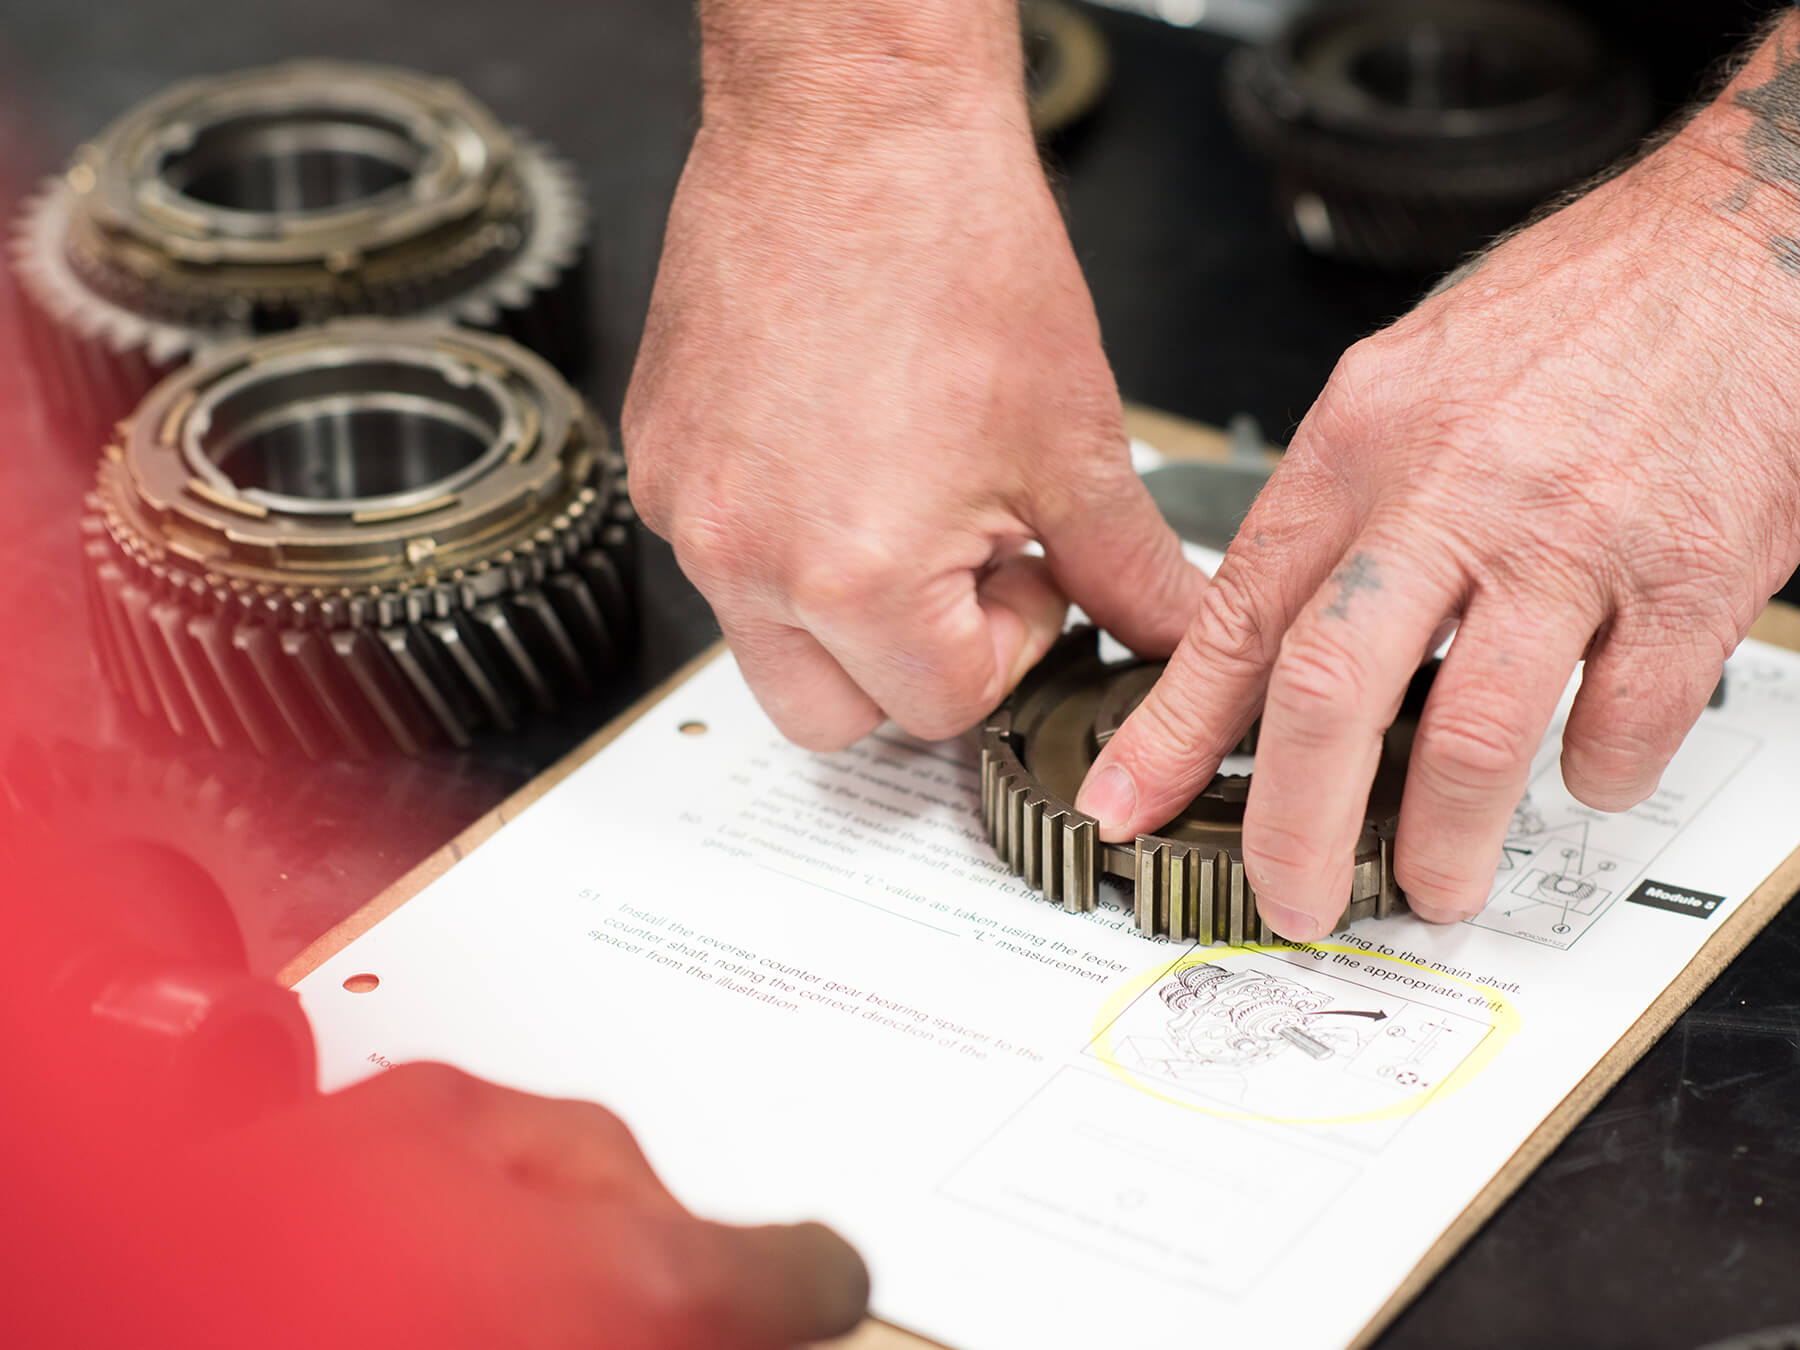 Photo of hands working on a gear in the Nissan lab at Mooresville campus